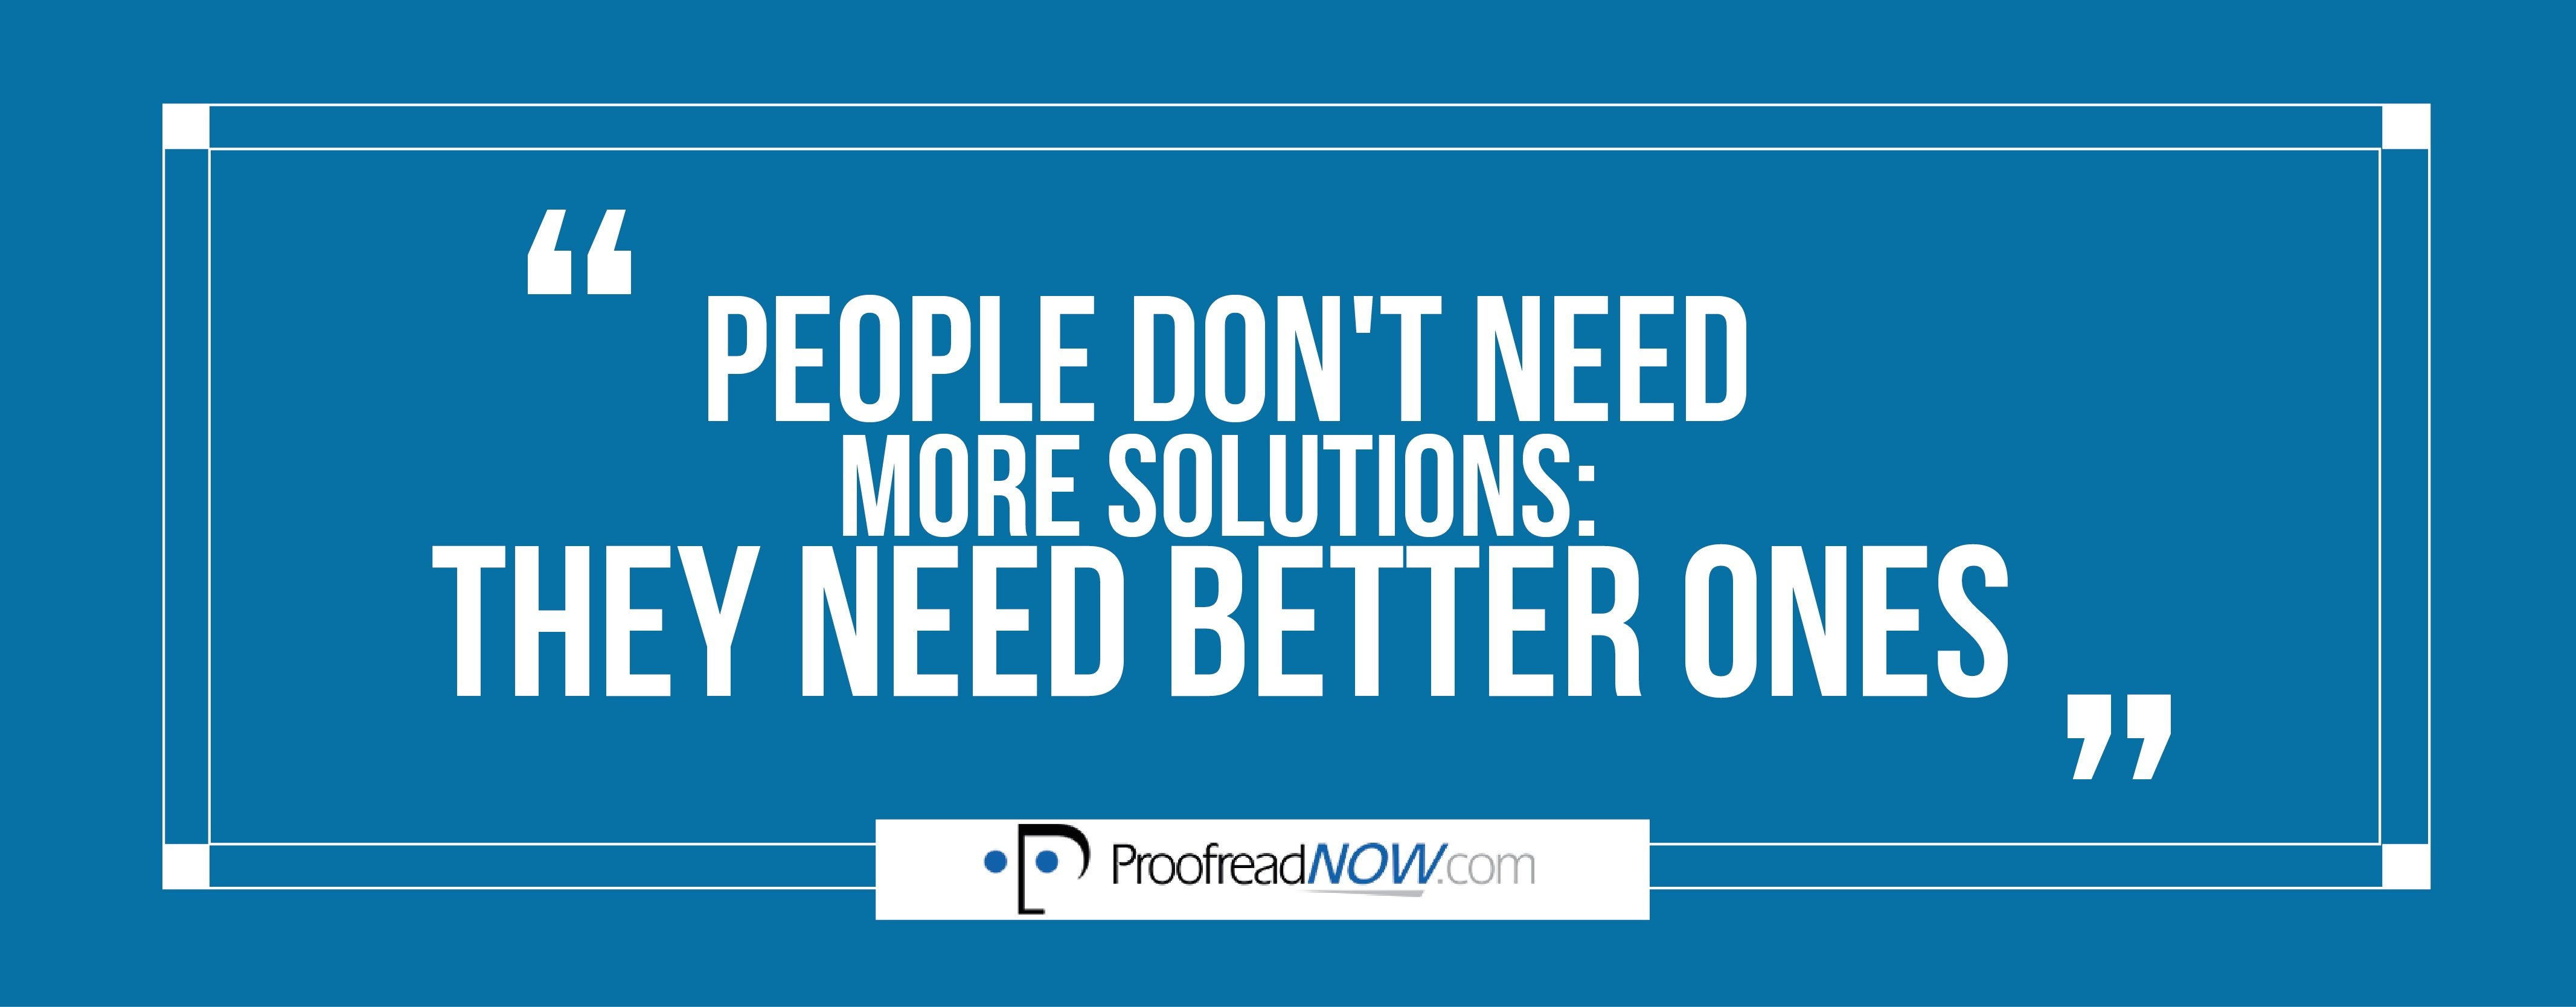 People don't need more solutions: they need better ones.